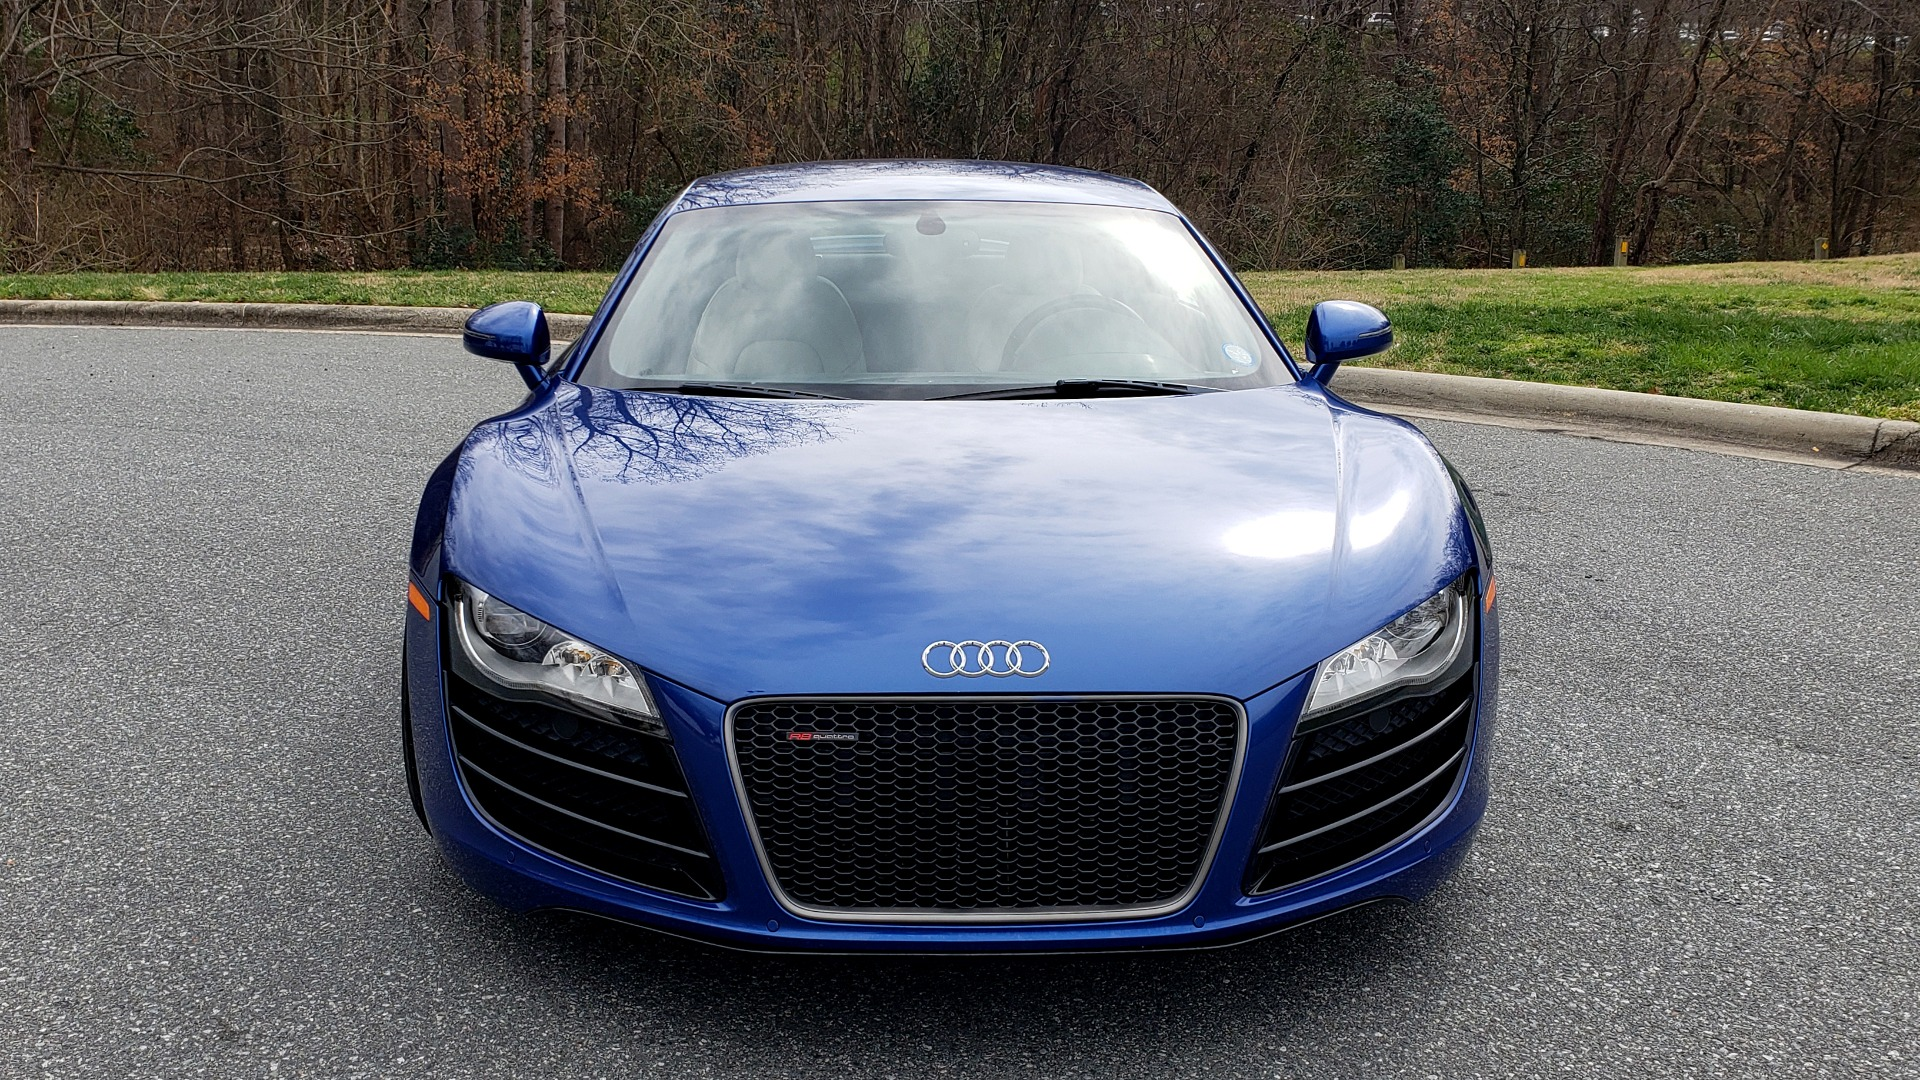 Used 2010 Audi R8 5.2L V10 / AWD / NAV / B&O SND / HTD STS / CUSTOM EXH & WHEELS for sale $78,000 at Formula Imports in Charlotte NC 28227 24